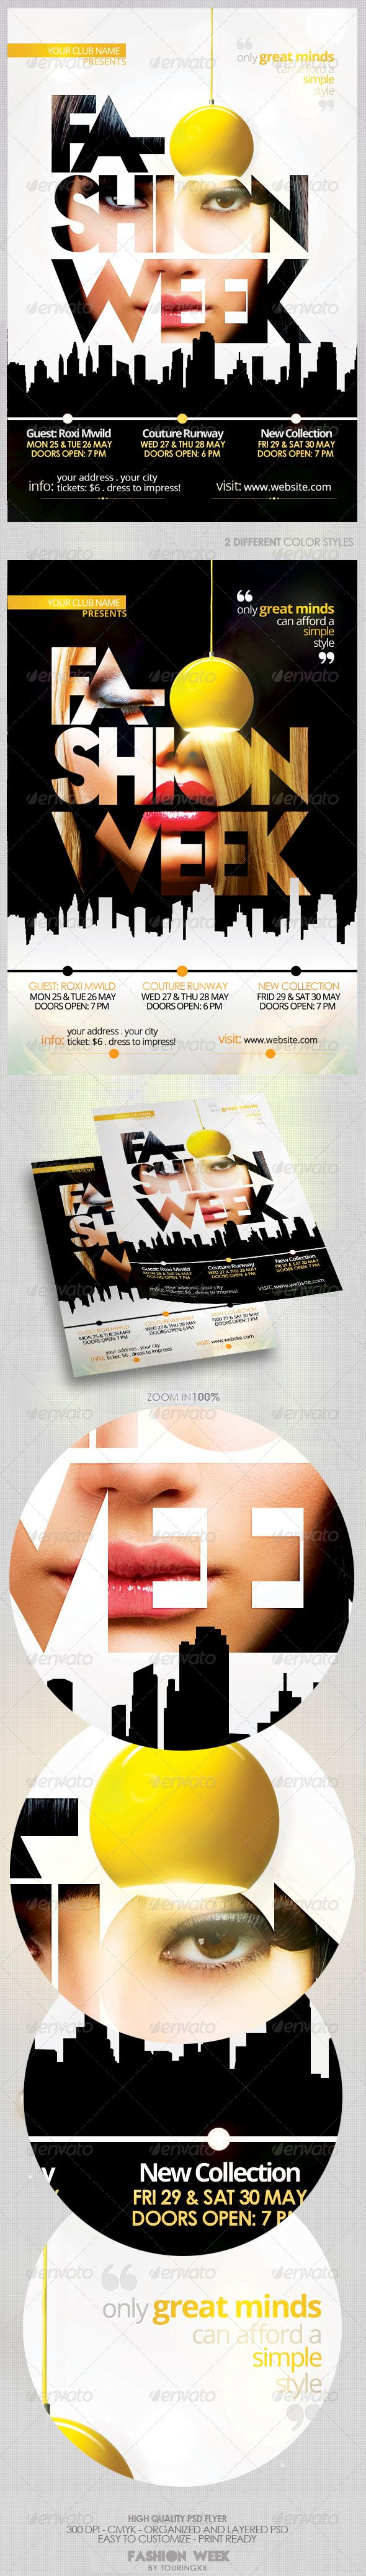 Fashion Week Vol 2 Flyer Template